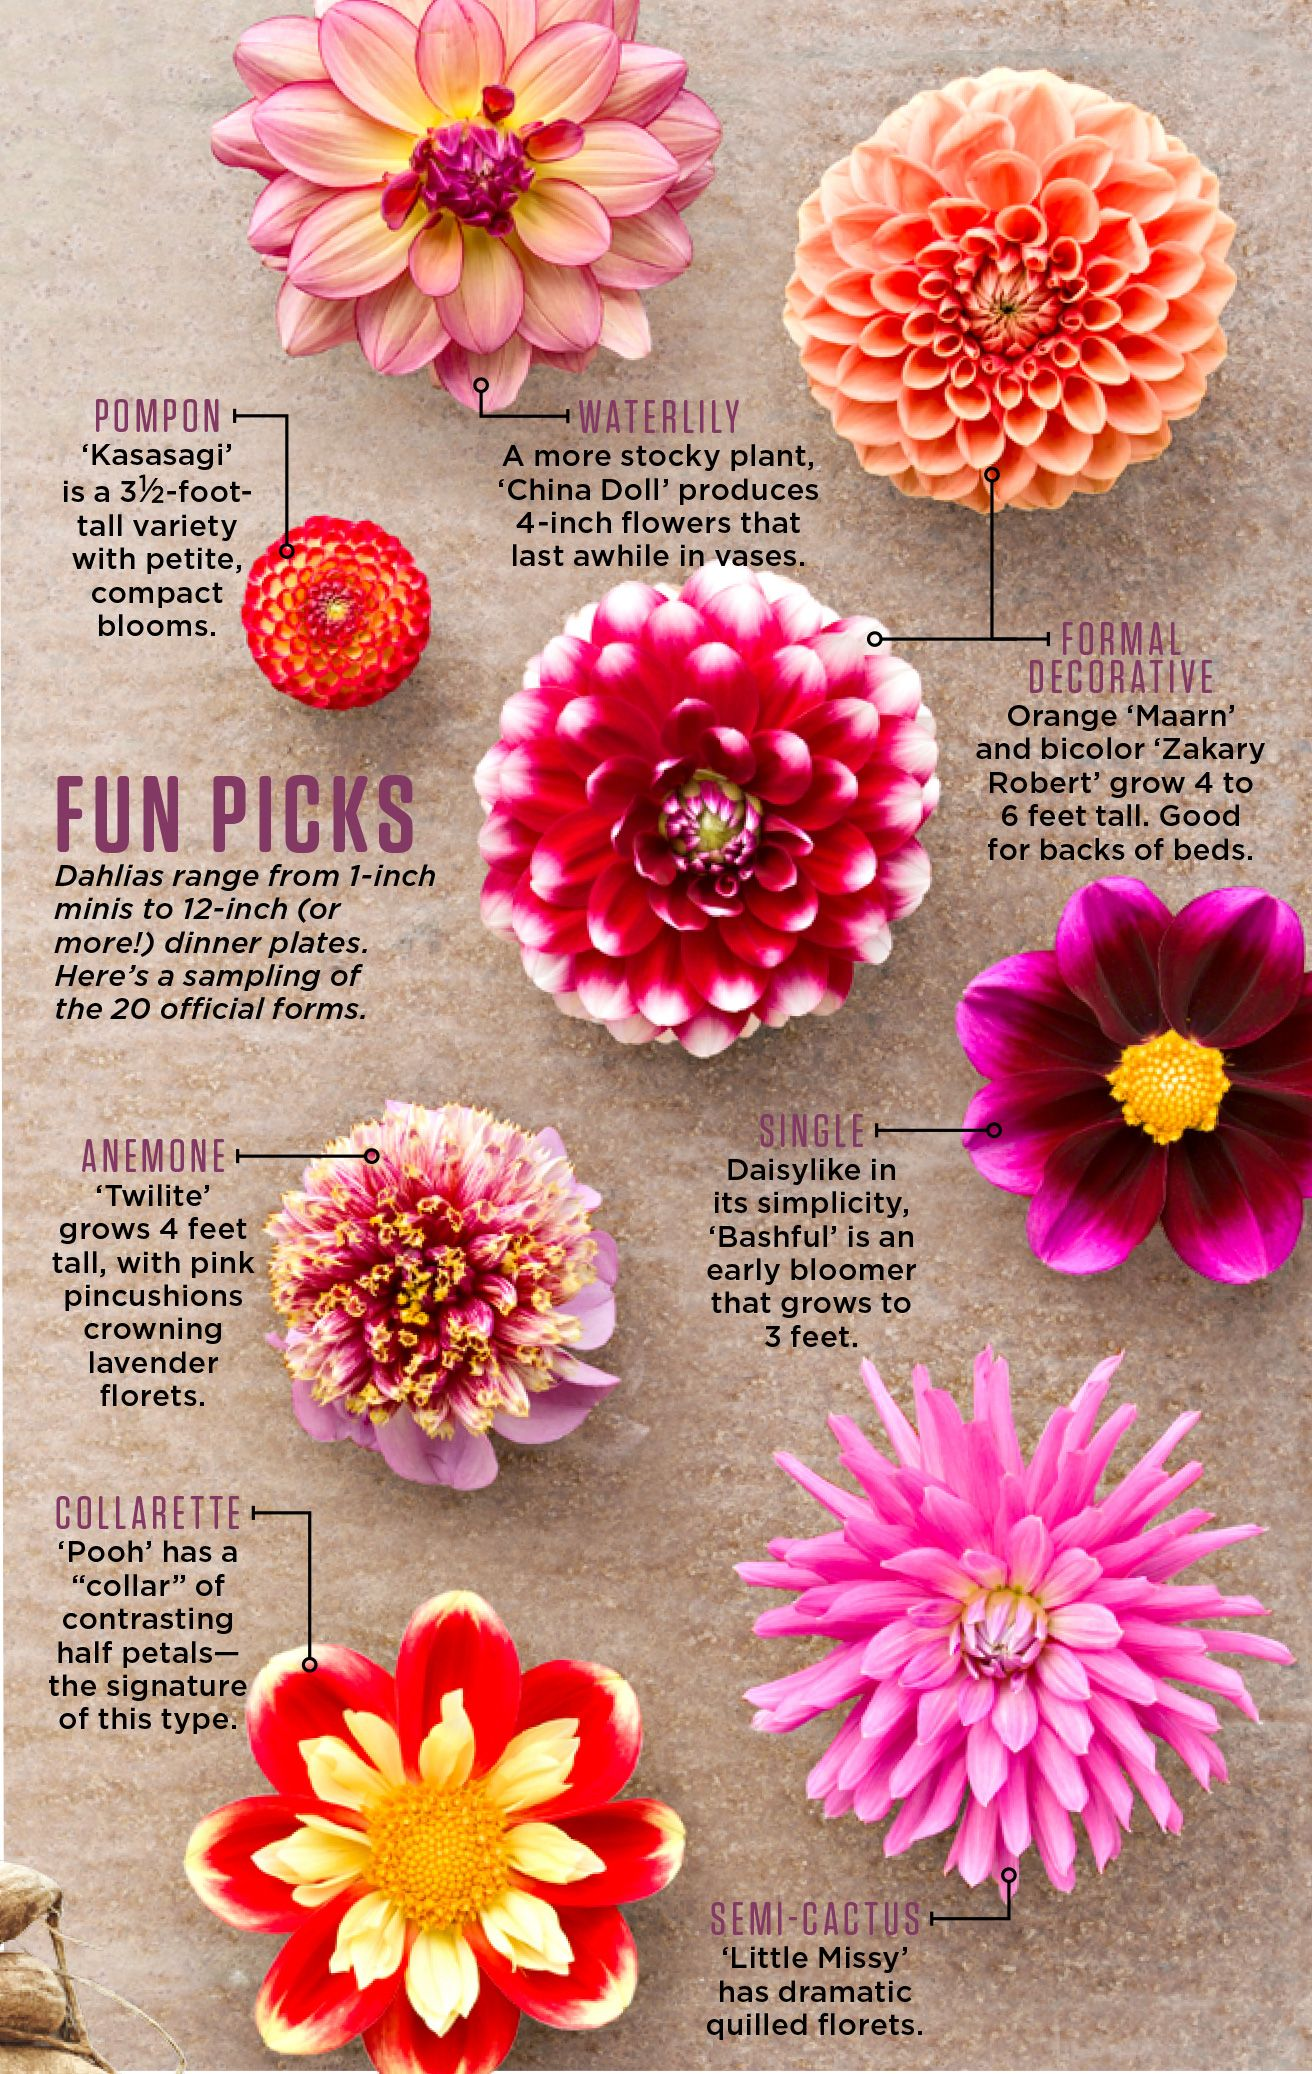 Available in thousands (really) of variations, dahlias bloom well into fall—and with just a little post-frost work, can survive for an encore come spring.